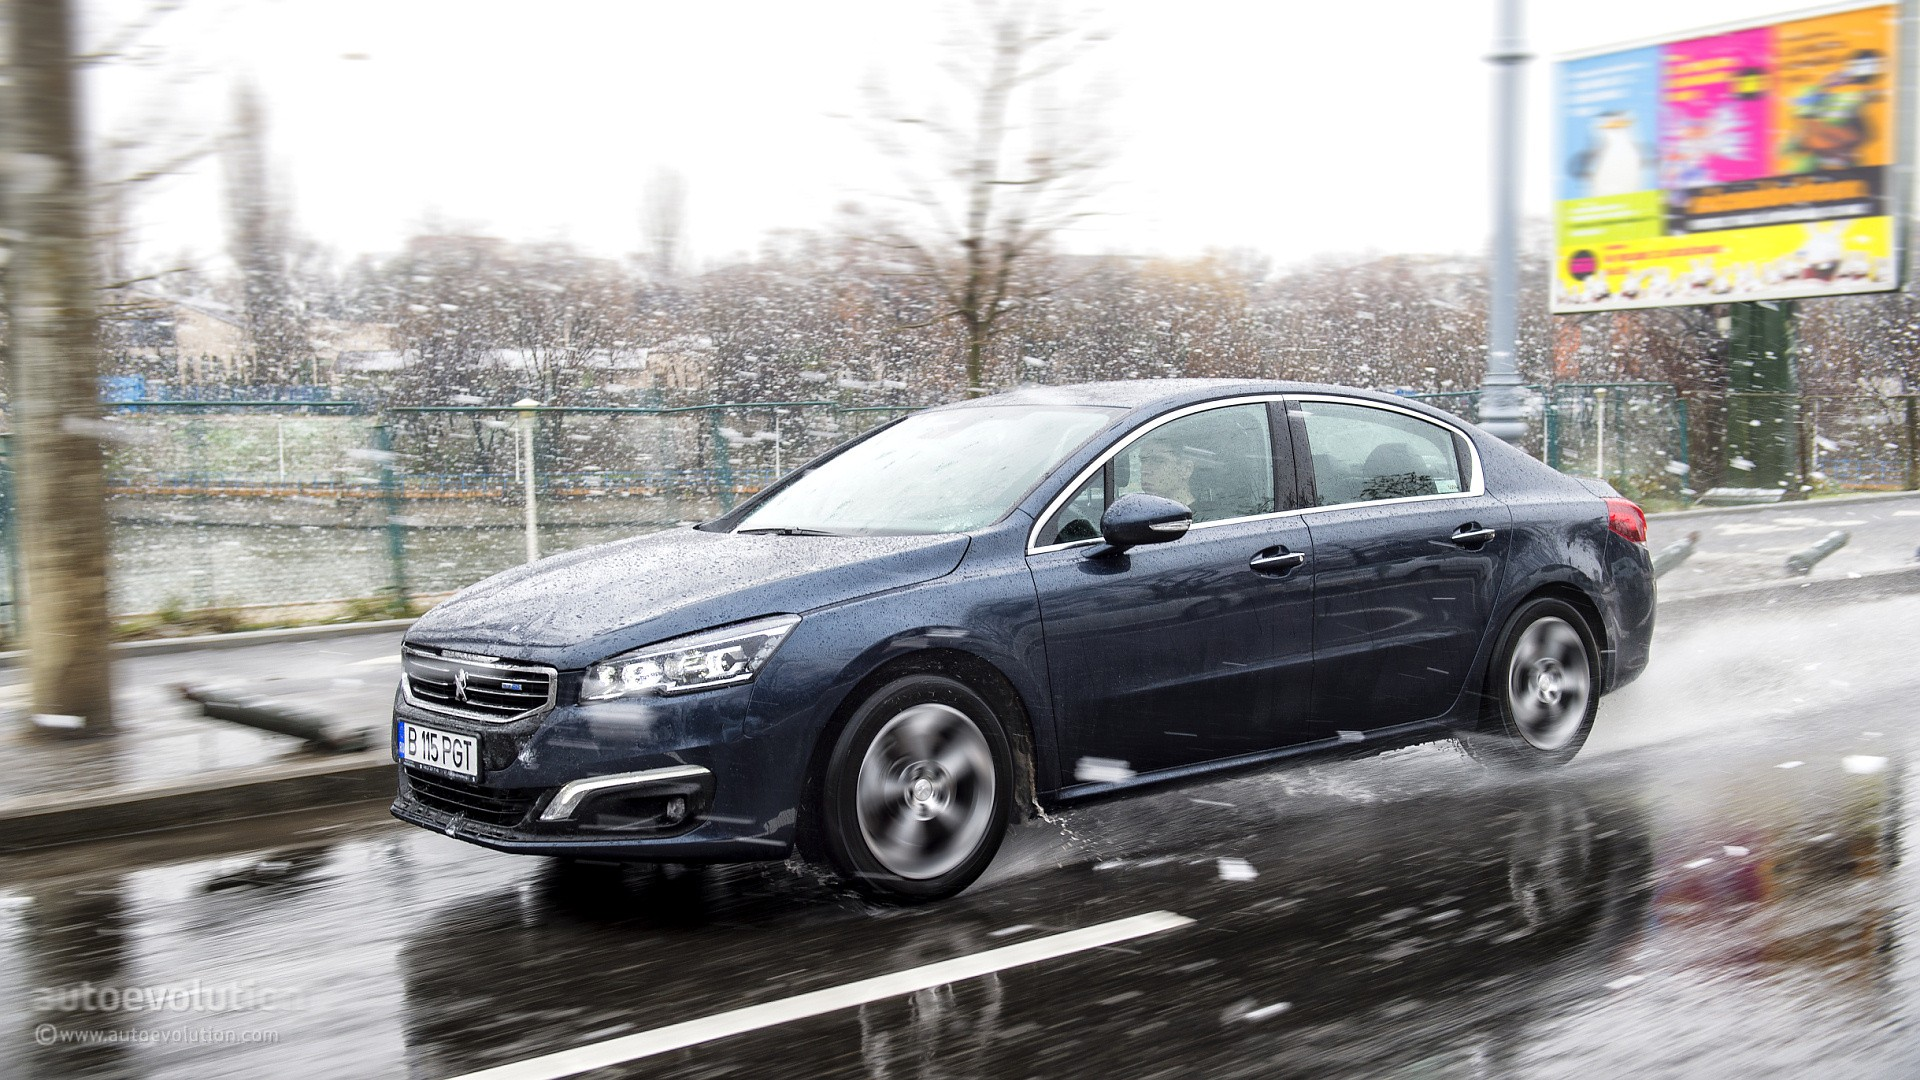 2015 Peugeot 508 Review Autoevolution